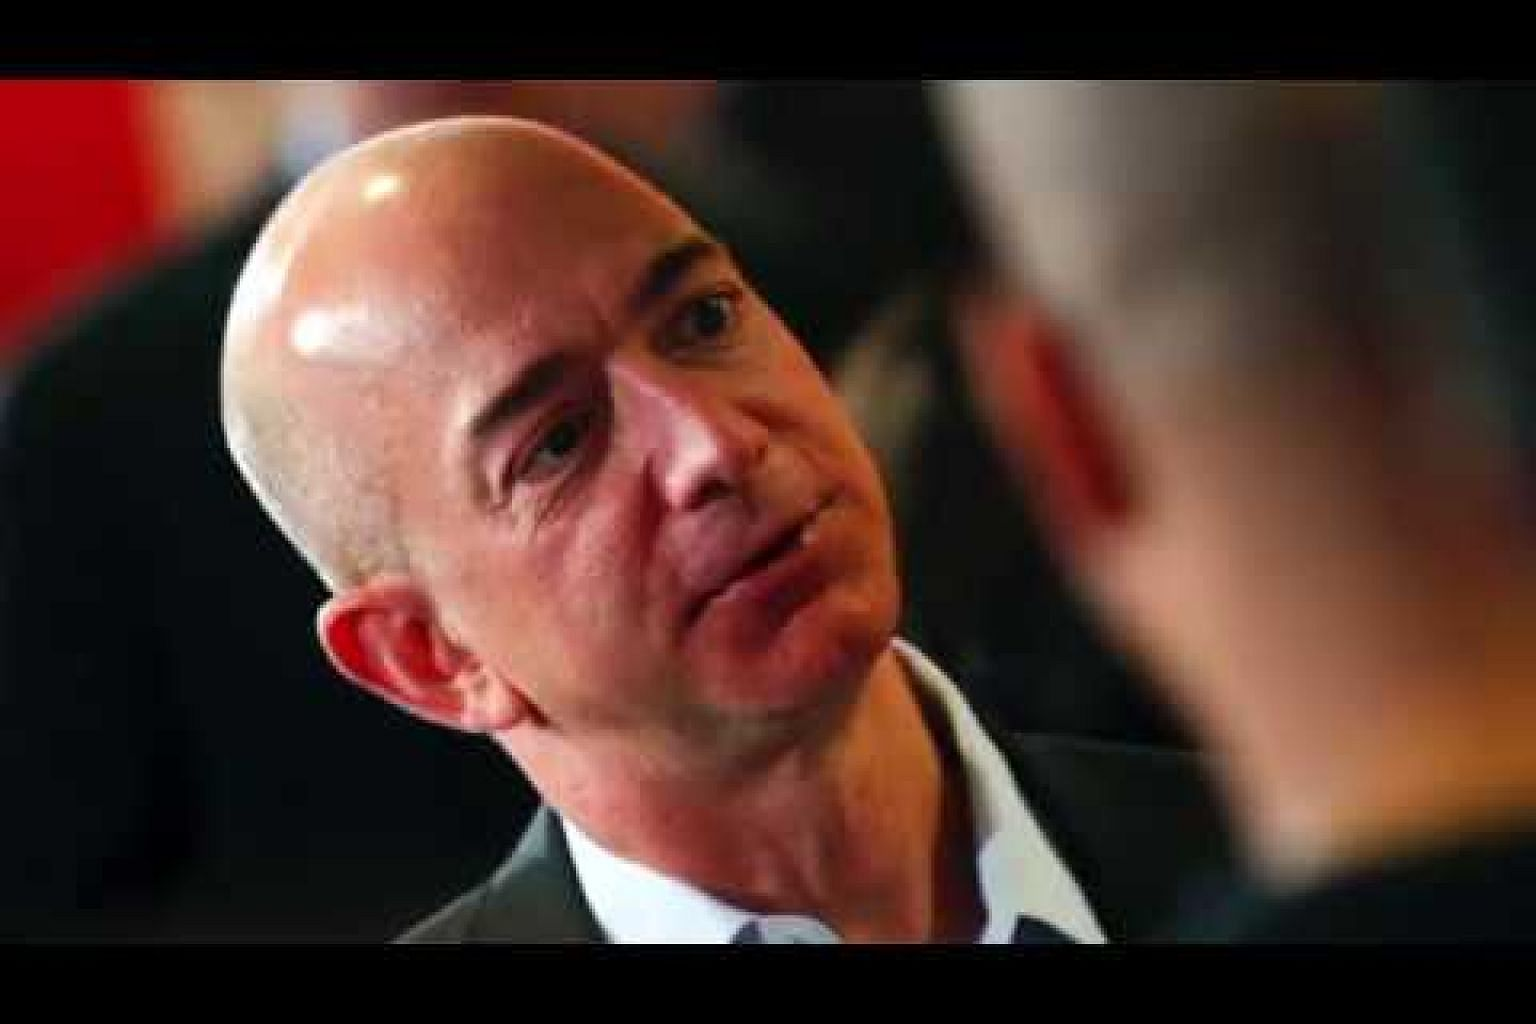 AMI fires back after Bezos' claims of extortion